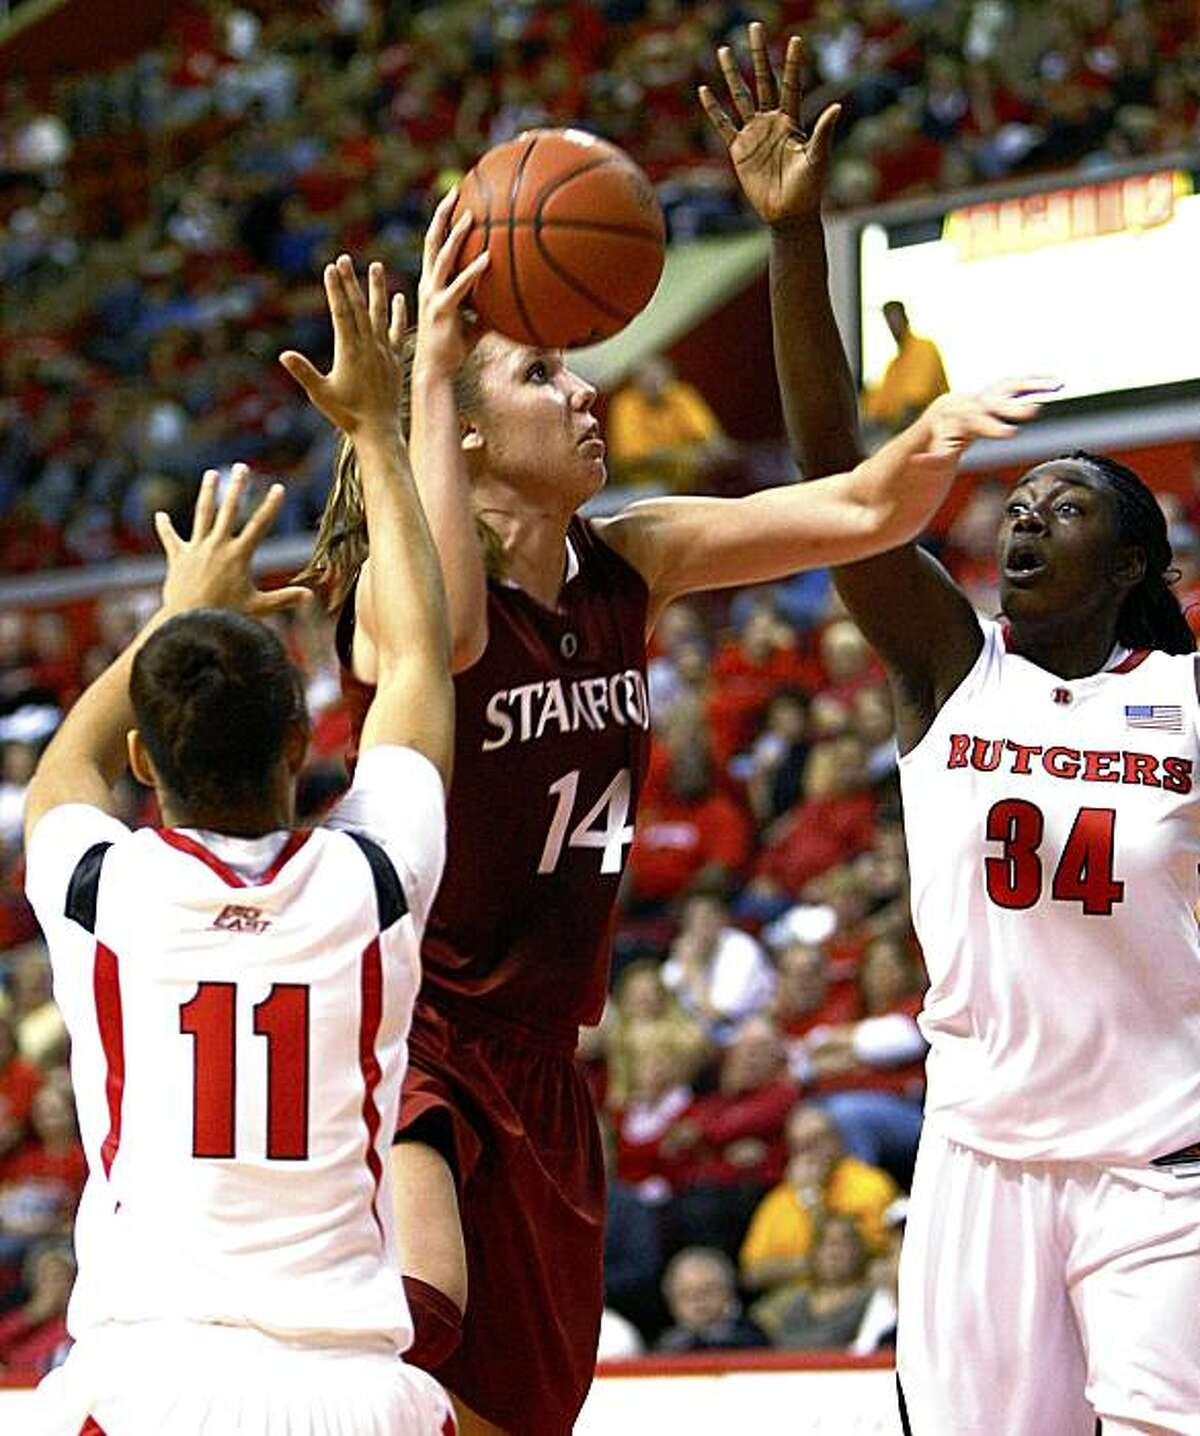 Stanford's Kayla Pederson (14) shoots between Rutgers' Nikki Speed (11) and Chelsey Lee (34) during the second half of an NCAA women's college basketball game in Piscataway, N.J., on Sunday, Nov. 15, 2009. Stanford won 81-66. (AP Photo/Tim Larsen)